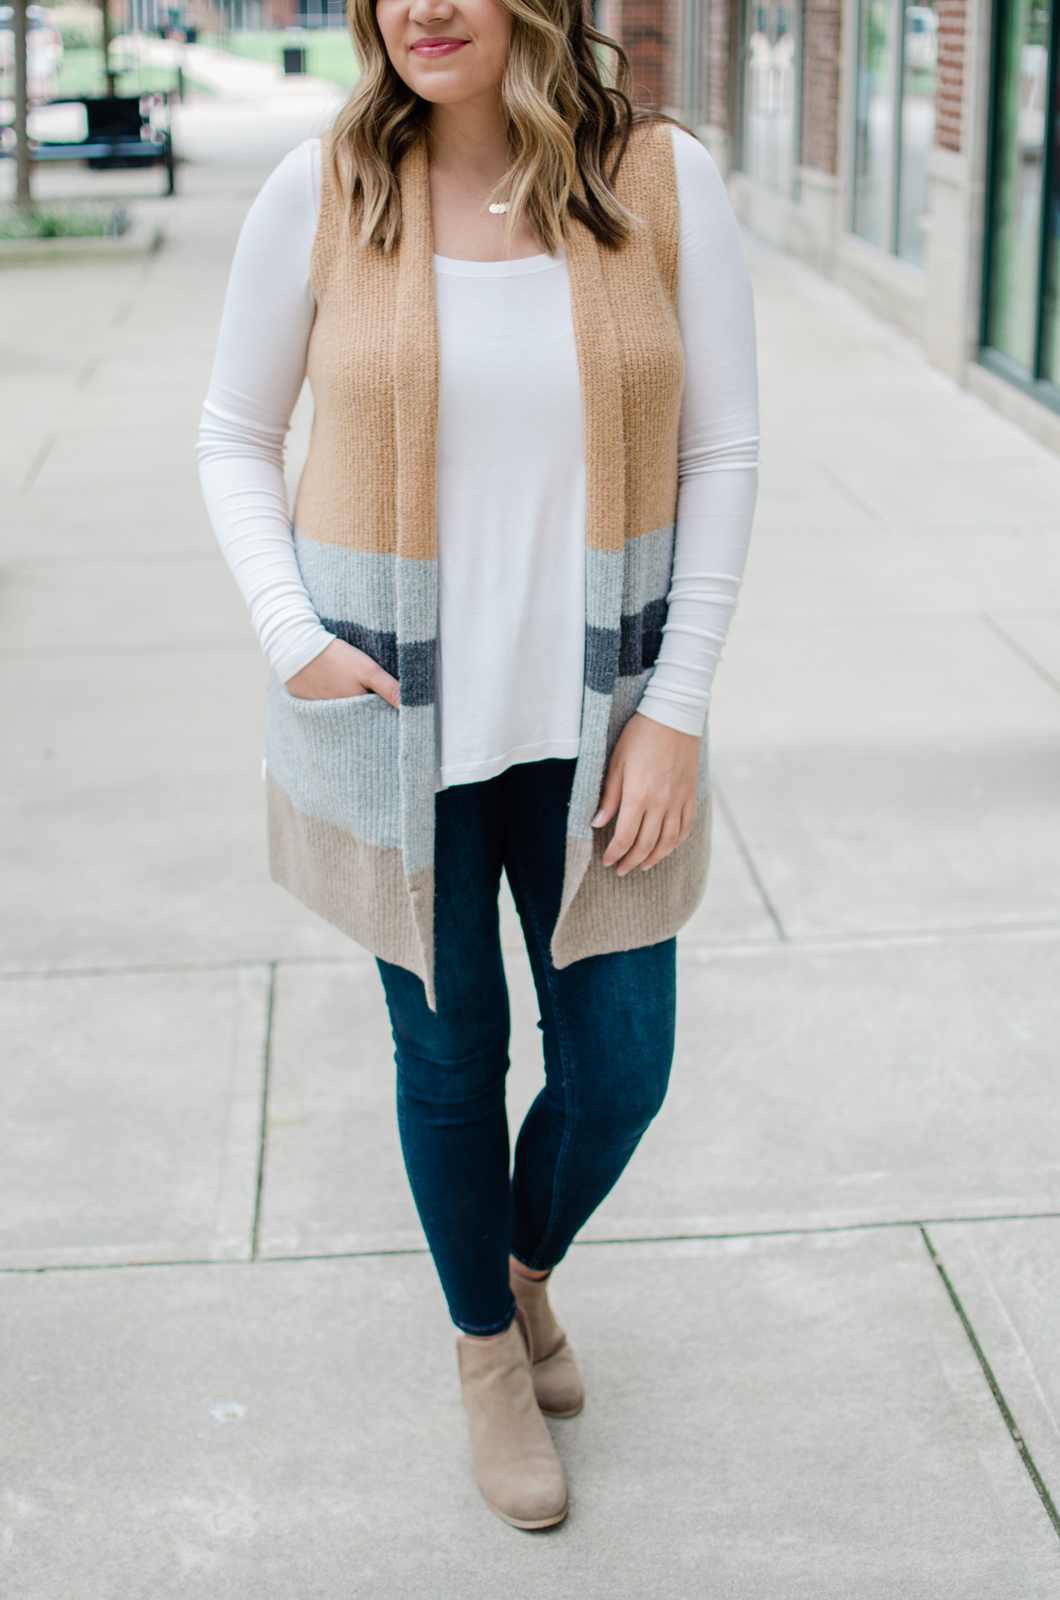 cute fall sweater vest outfit - how to wear an open sweater vest outfit for fall! | bylaurenm.com